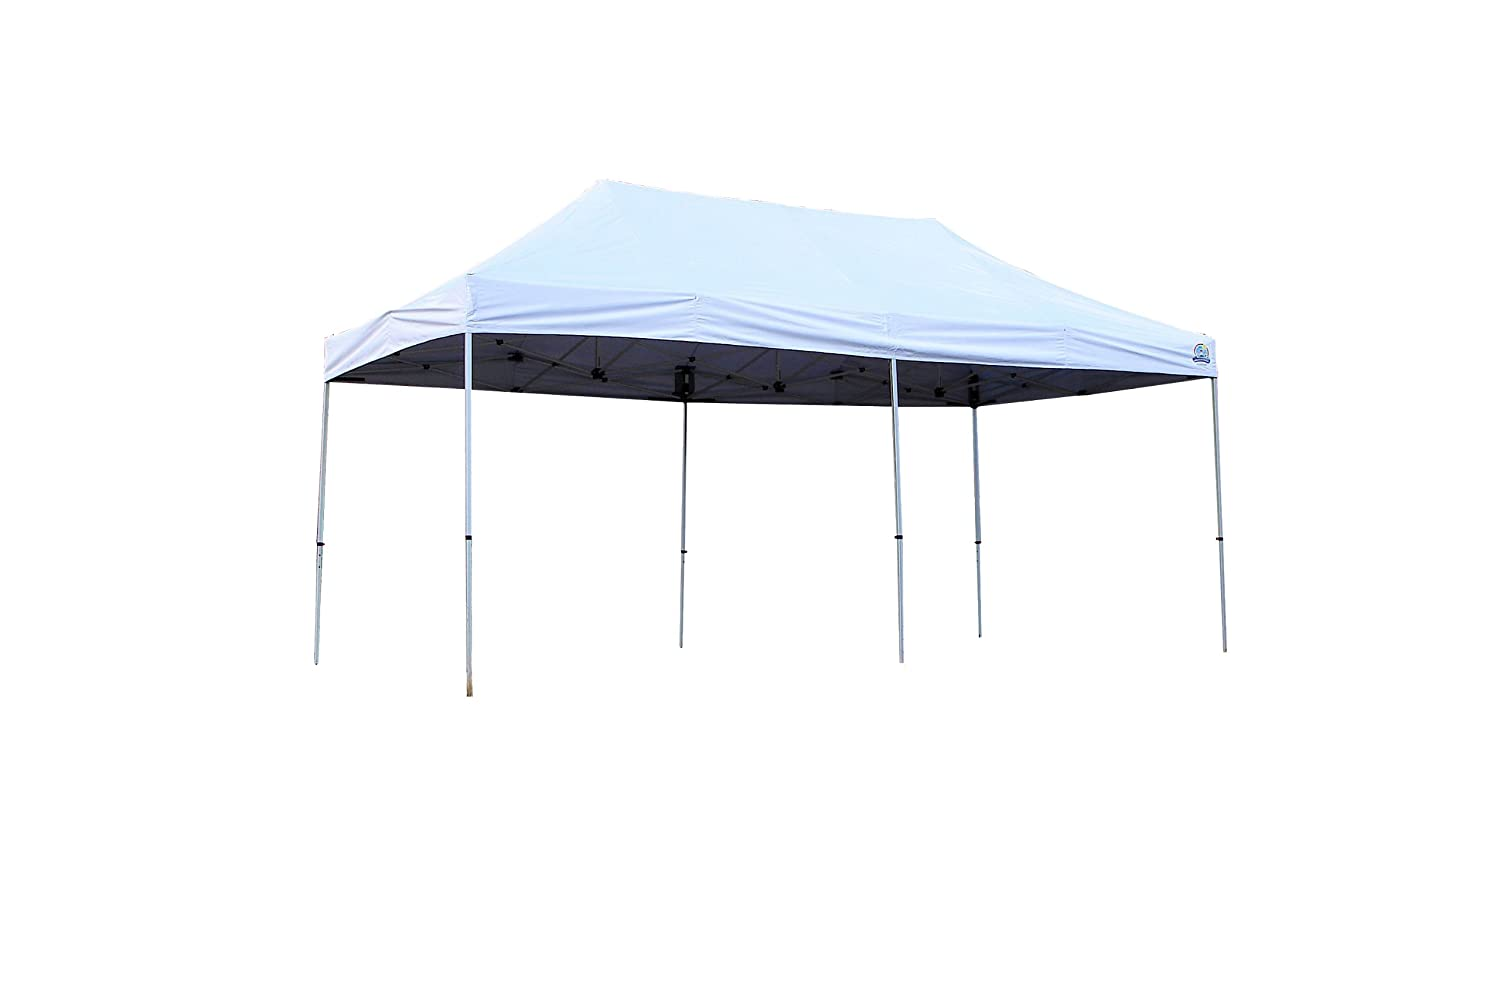 Amazon.com  Undercover Professional Grade Aluminum Shelter (White 10 x 20 -Feet)  Sun Shelters  Sports u0026 Outdoors  sc 1 st  Amazon.com & Amazon.com : Undercover Professional Grade Aluminum Shelter (White ...